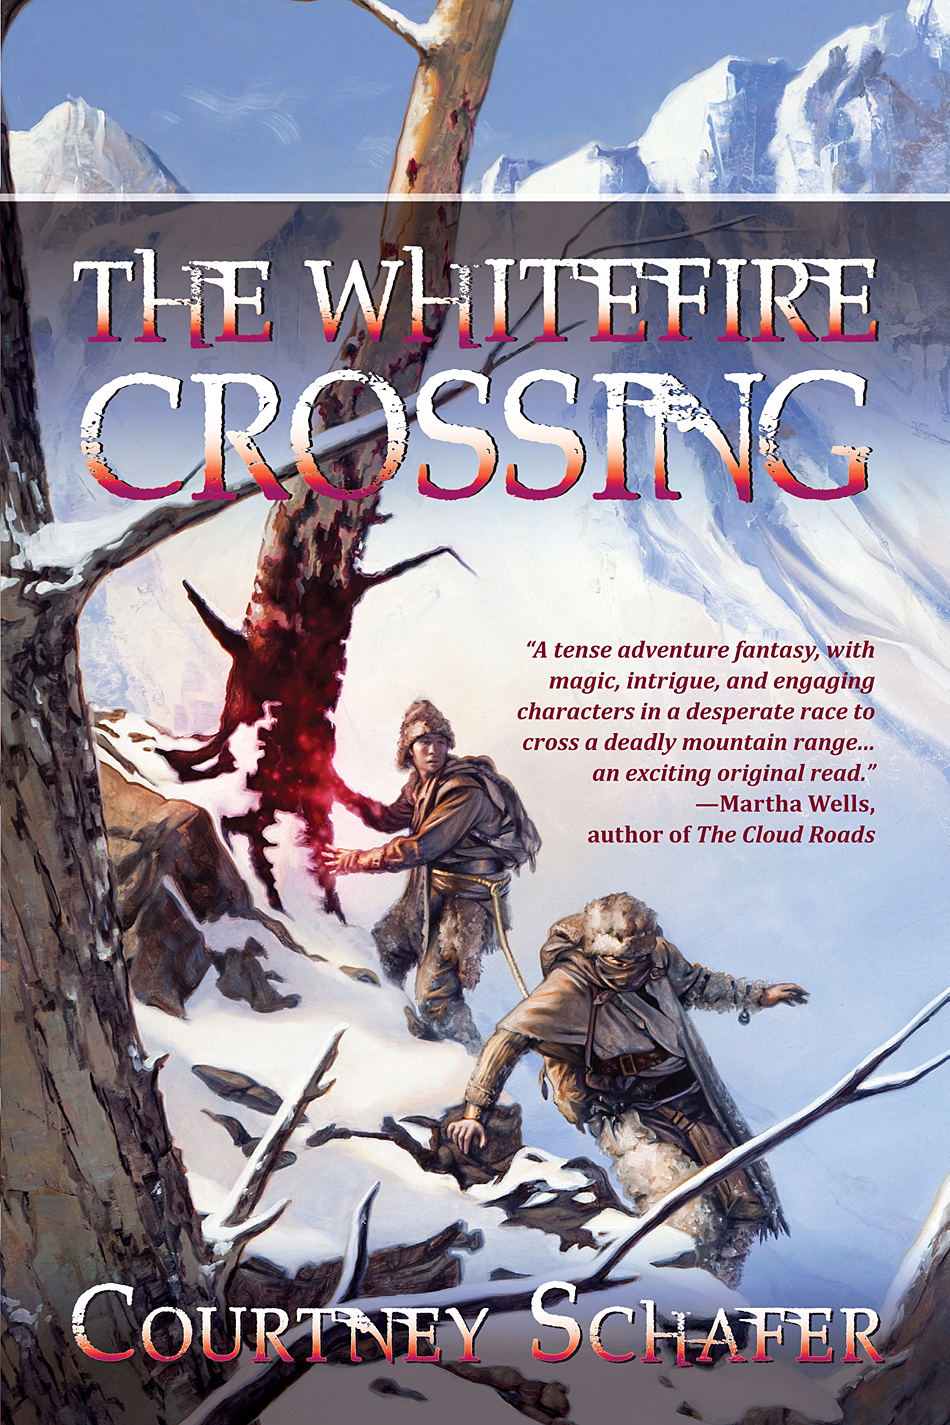 Whitefire Crossing Artwork